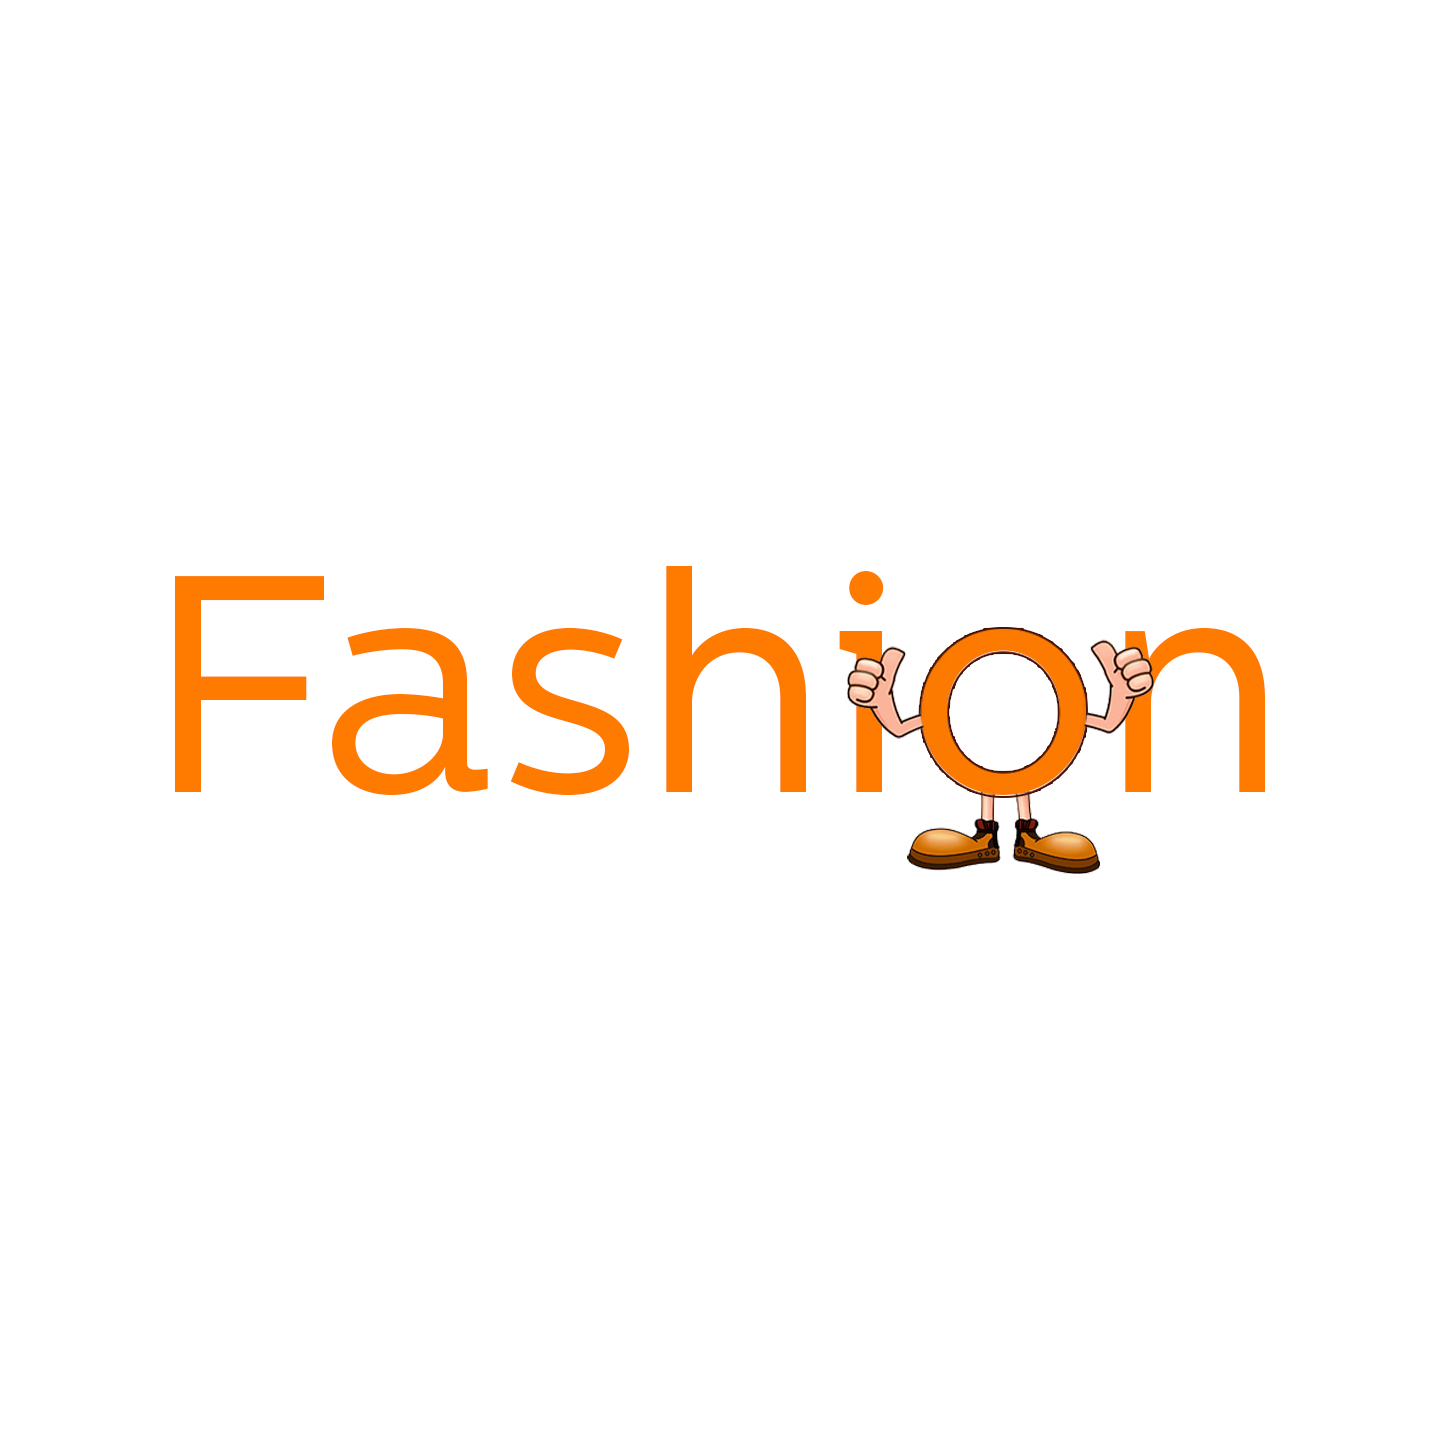 Inclusion in the fashion industry